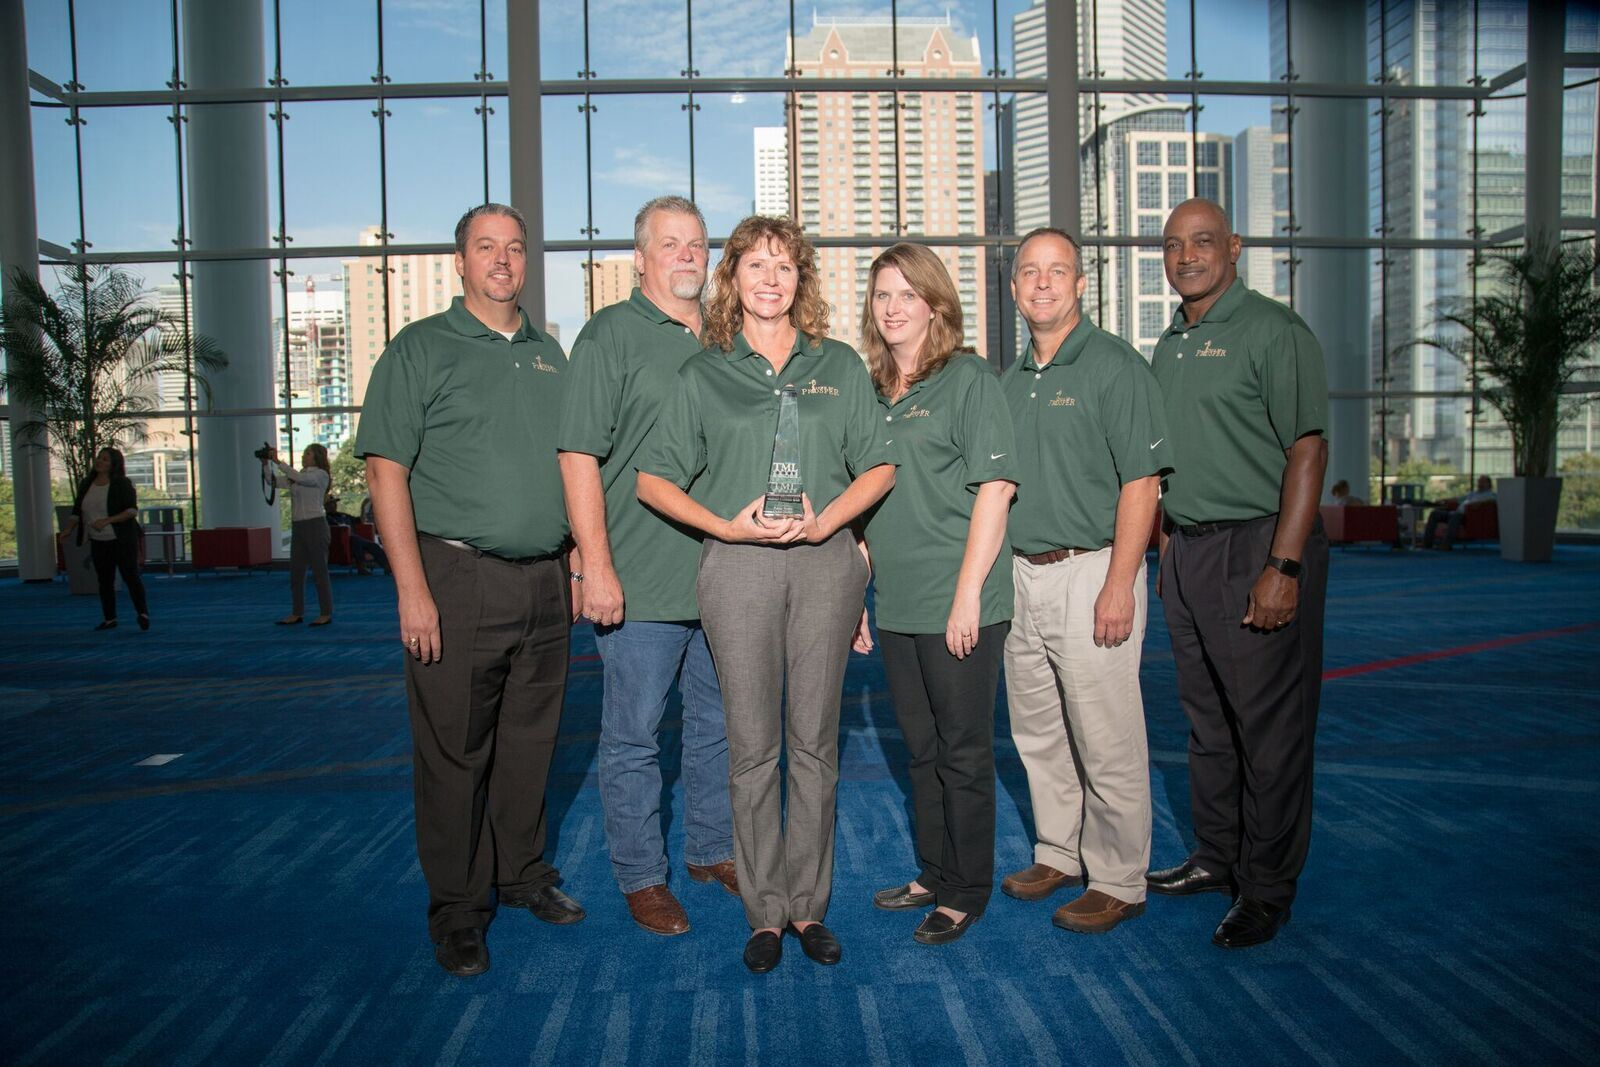 6 Prosper employees in green shirts together with one holding award at event